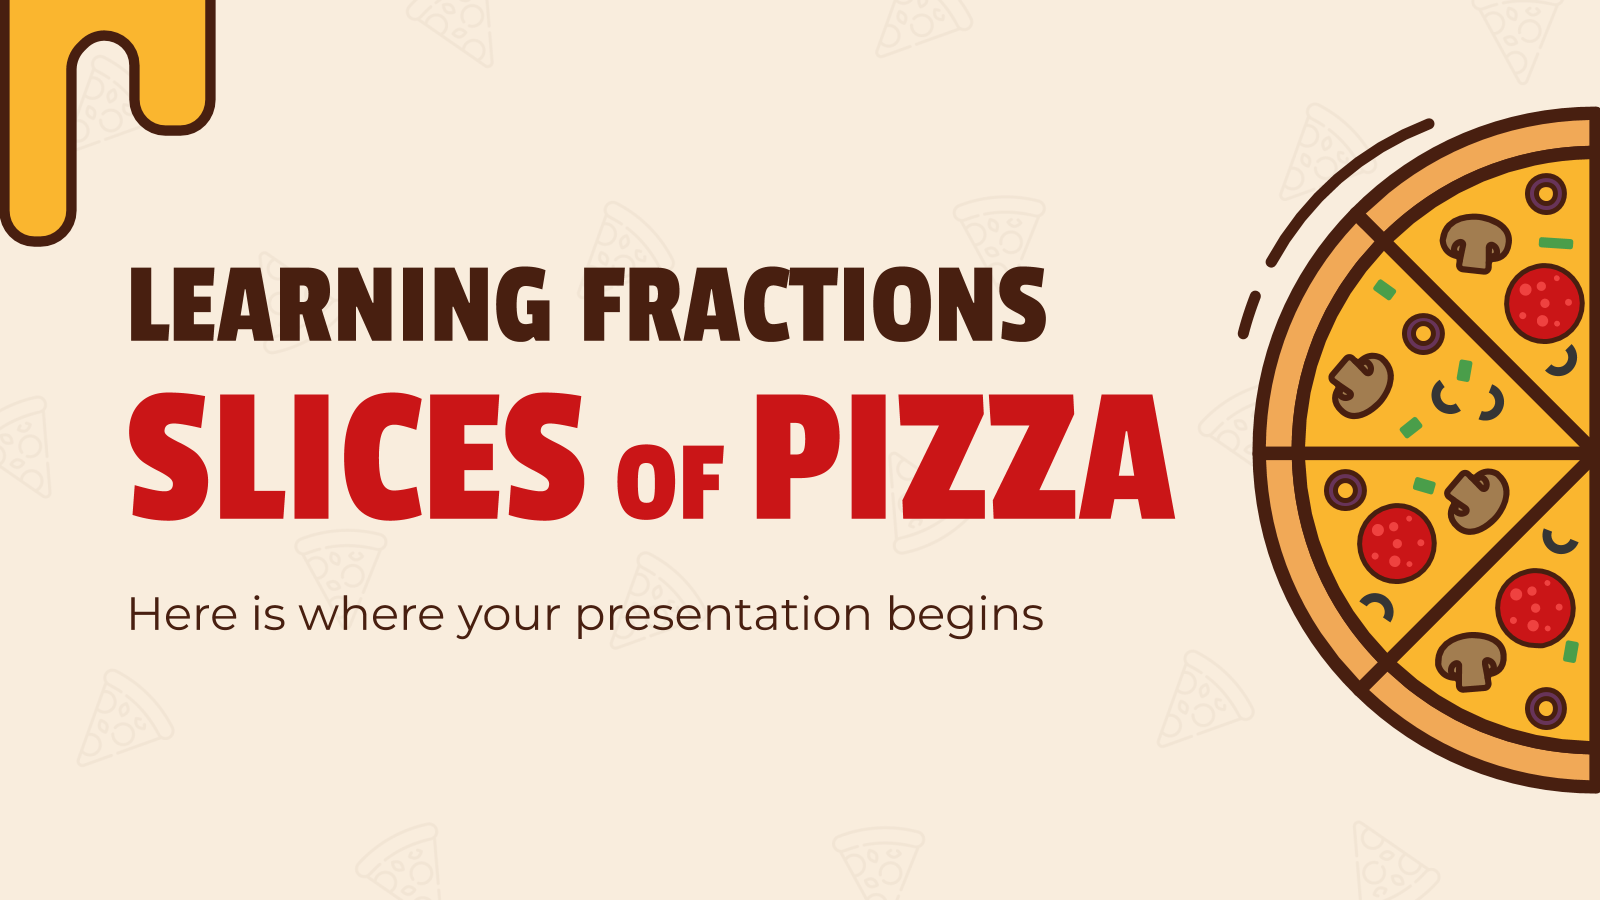 Learning Fractions: Slices of Pizza presentation template